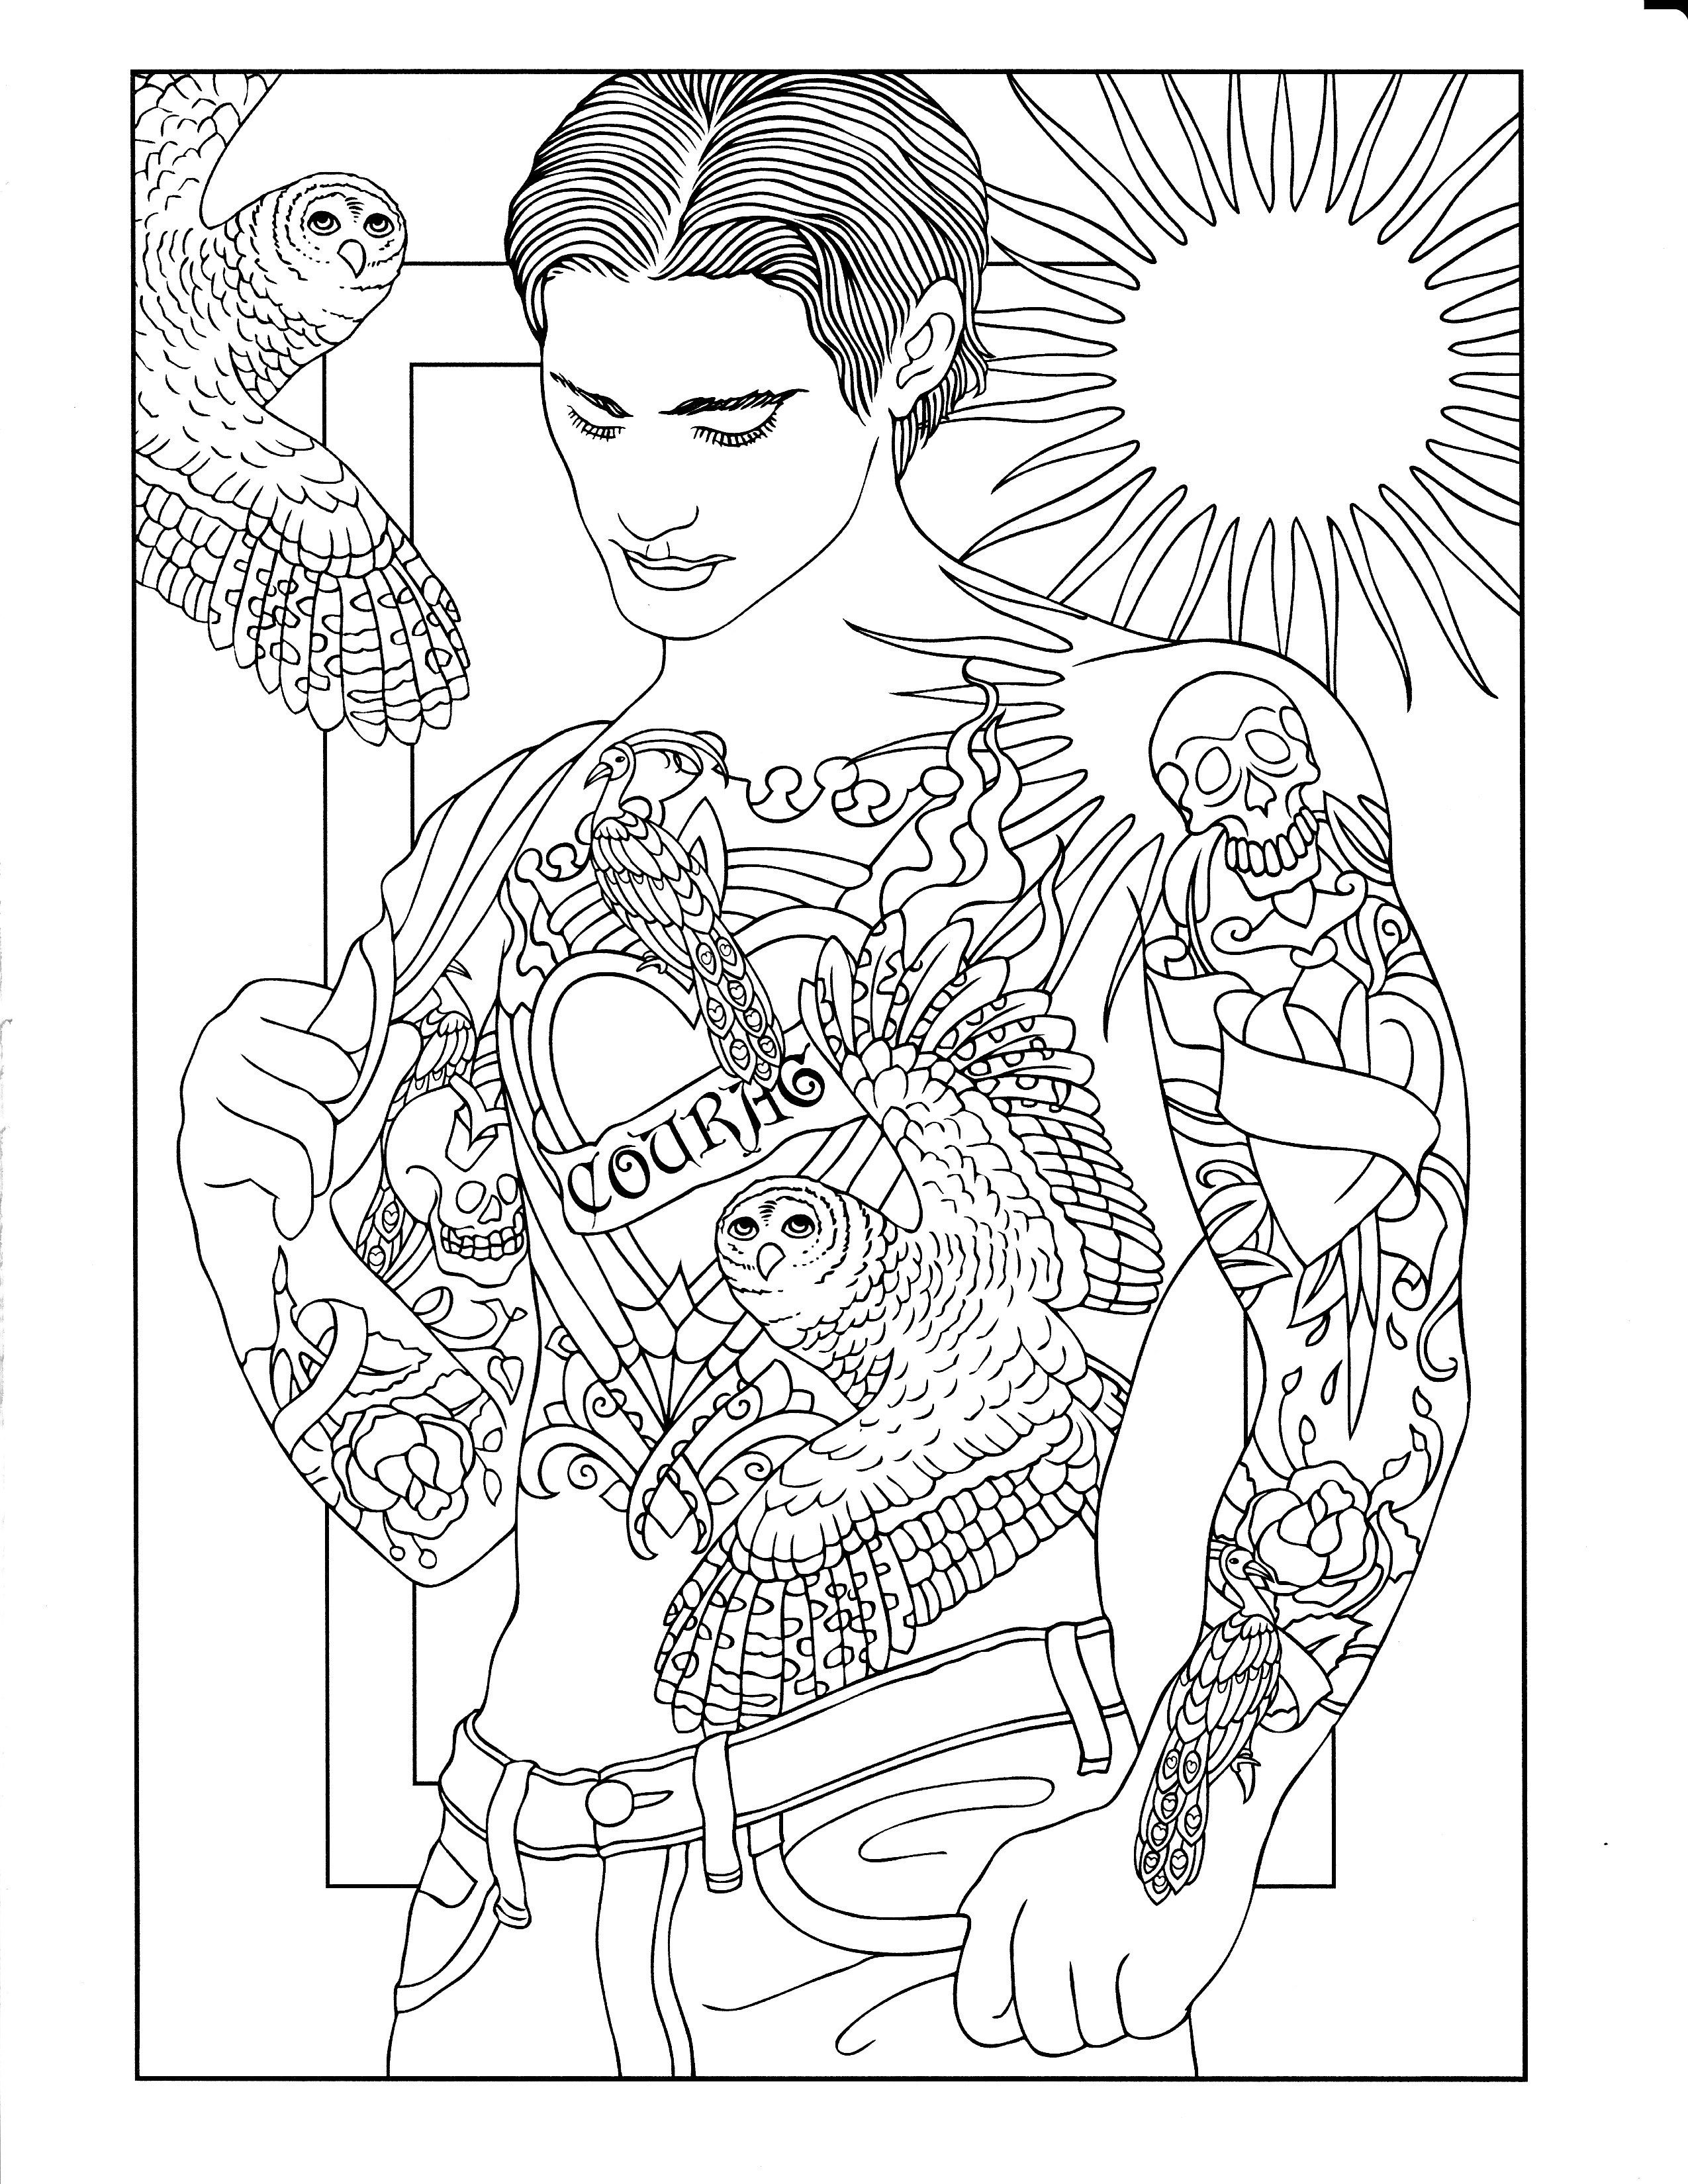 - Printable Coloring Page Tattoo Coloring Book, Coloring Books